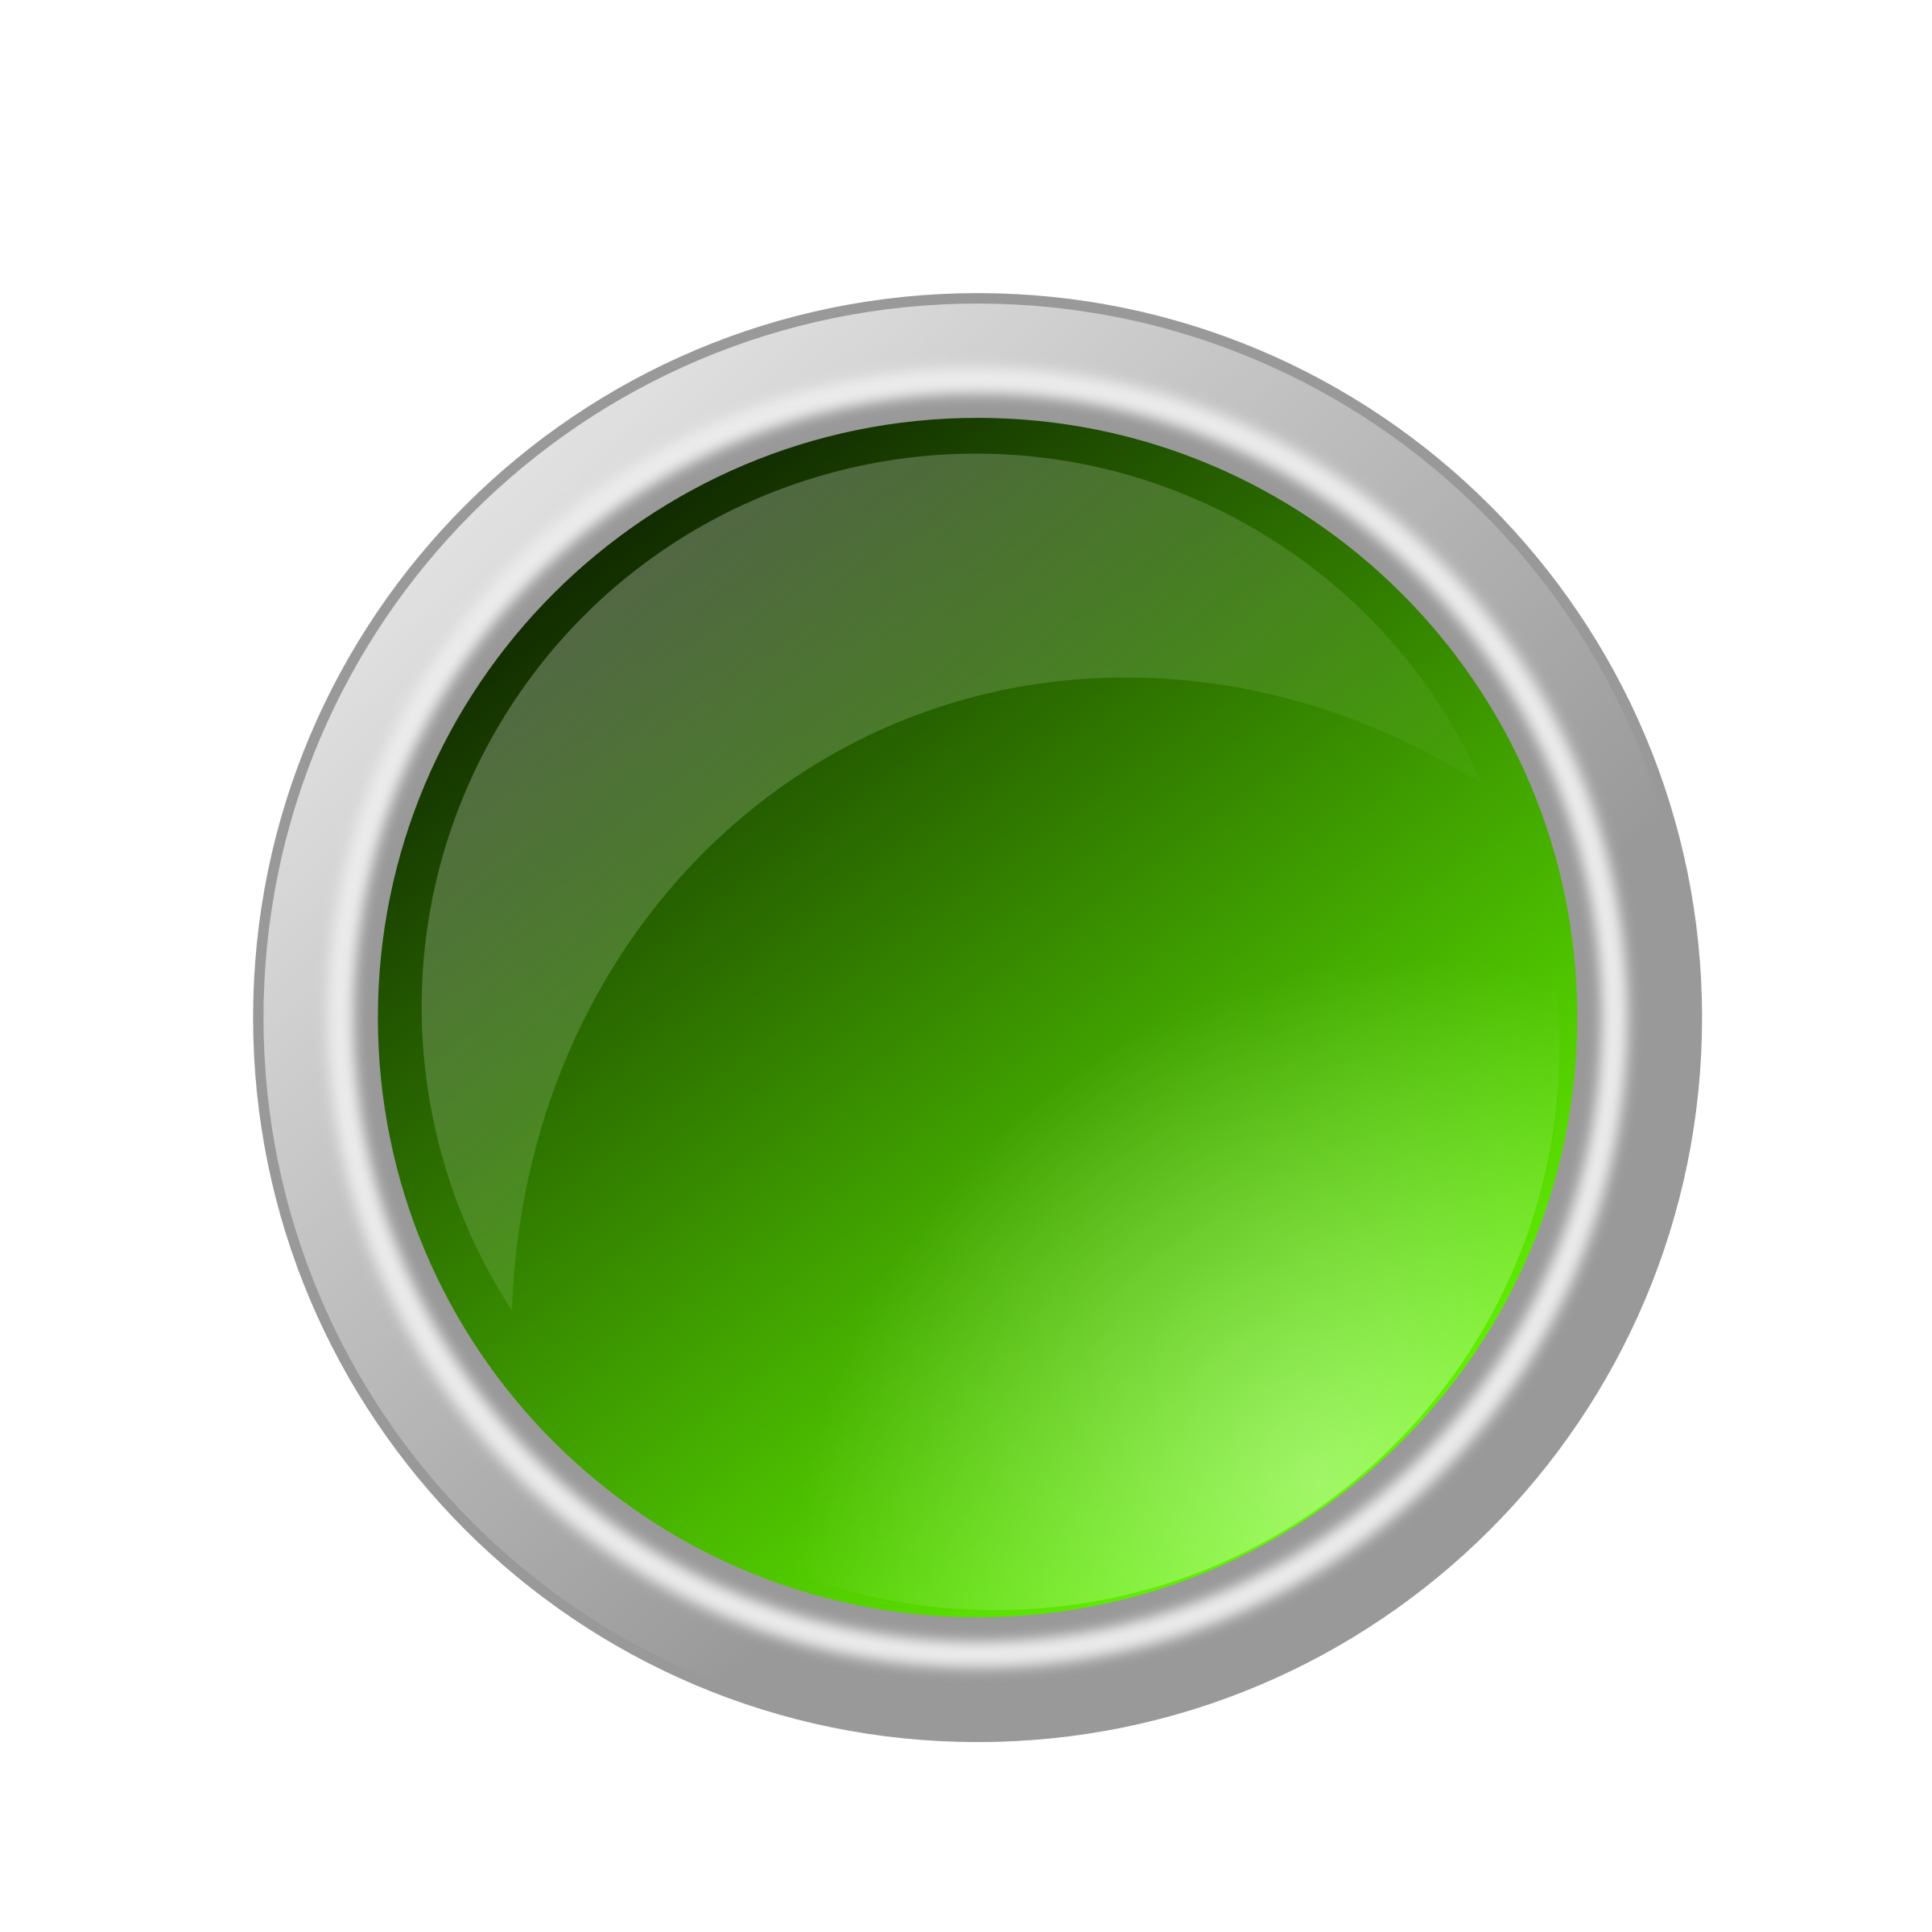 Transparent glass button png. Clipart glossy green big